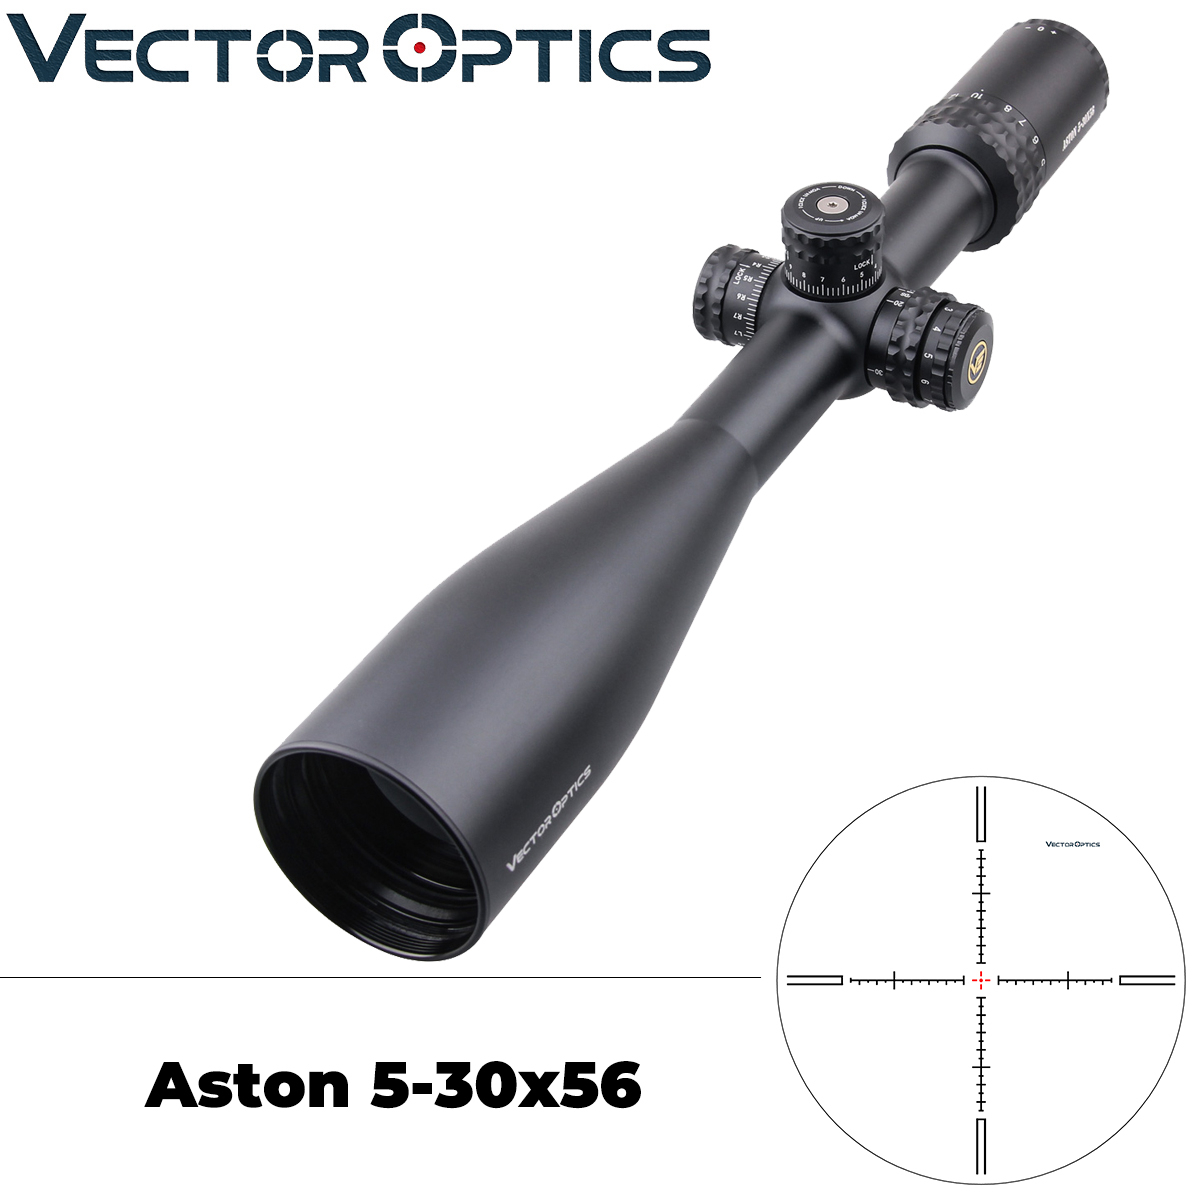 Vector Optics Top Brand Line Aston 5-30x56 Military Tactical Riflescope HD Glass Lens Hunting Scope .338 Lapua Sharp Clear View